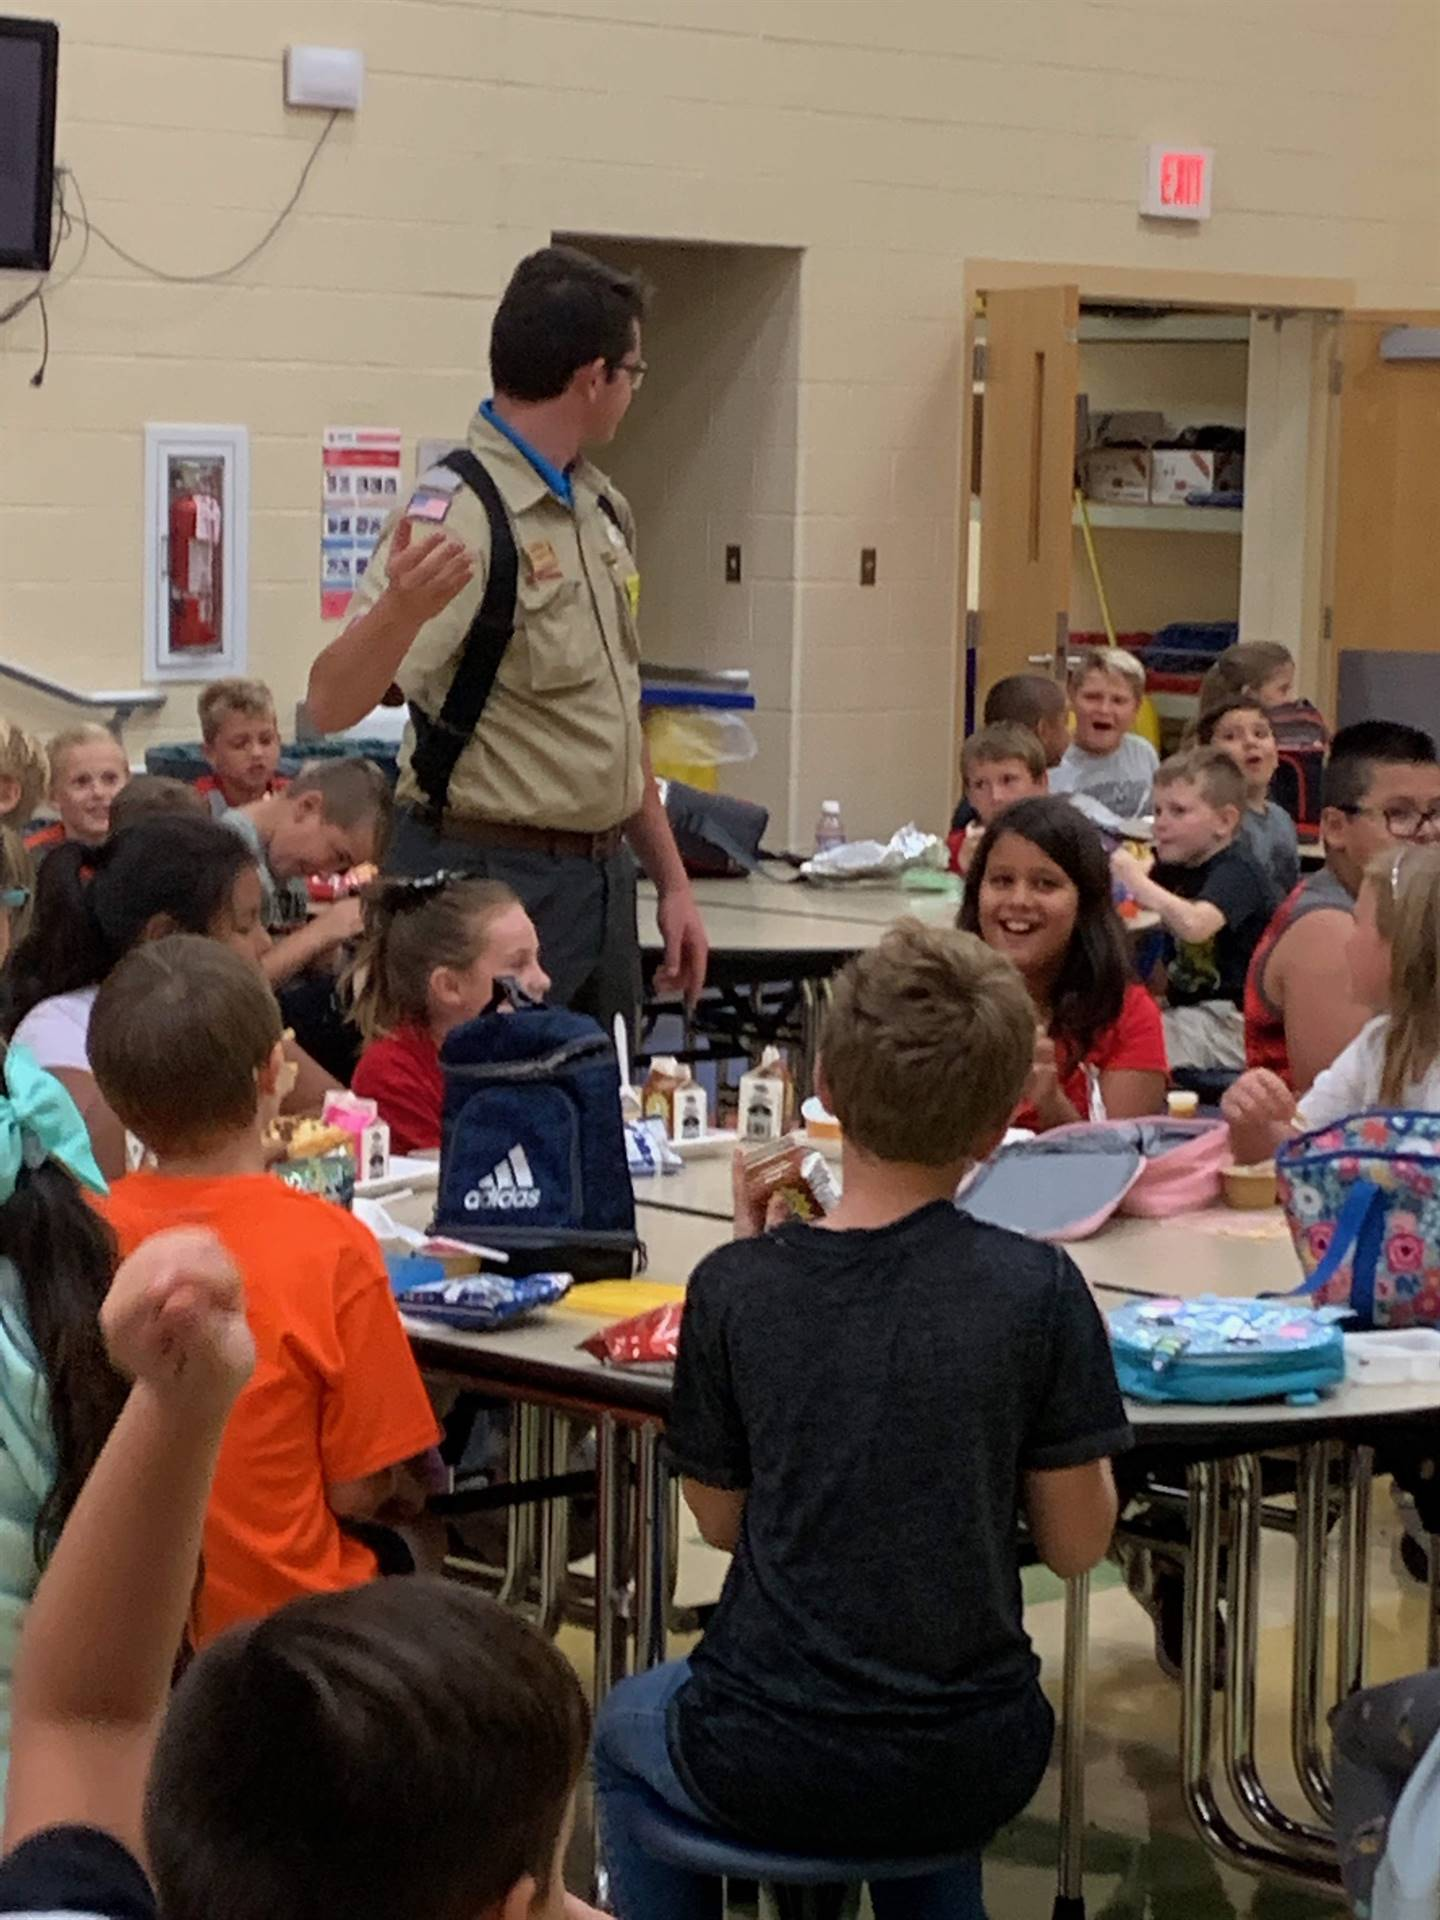 Boy Scout leader talking to NCE students in the cafeteria